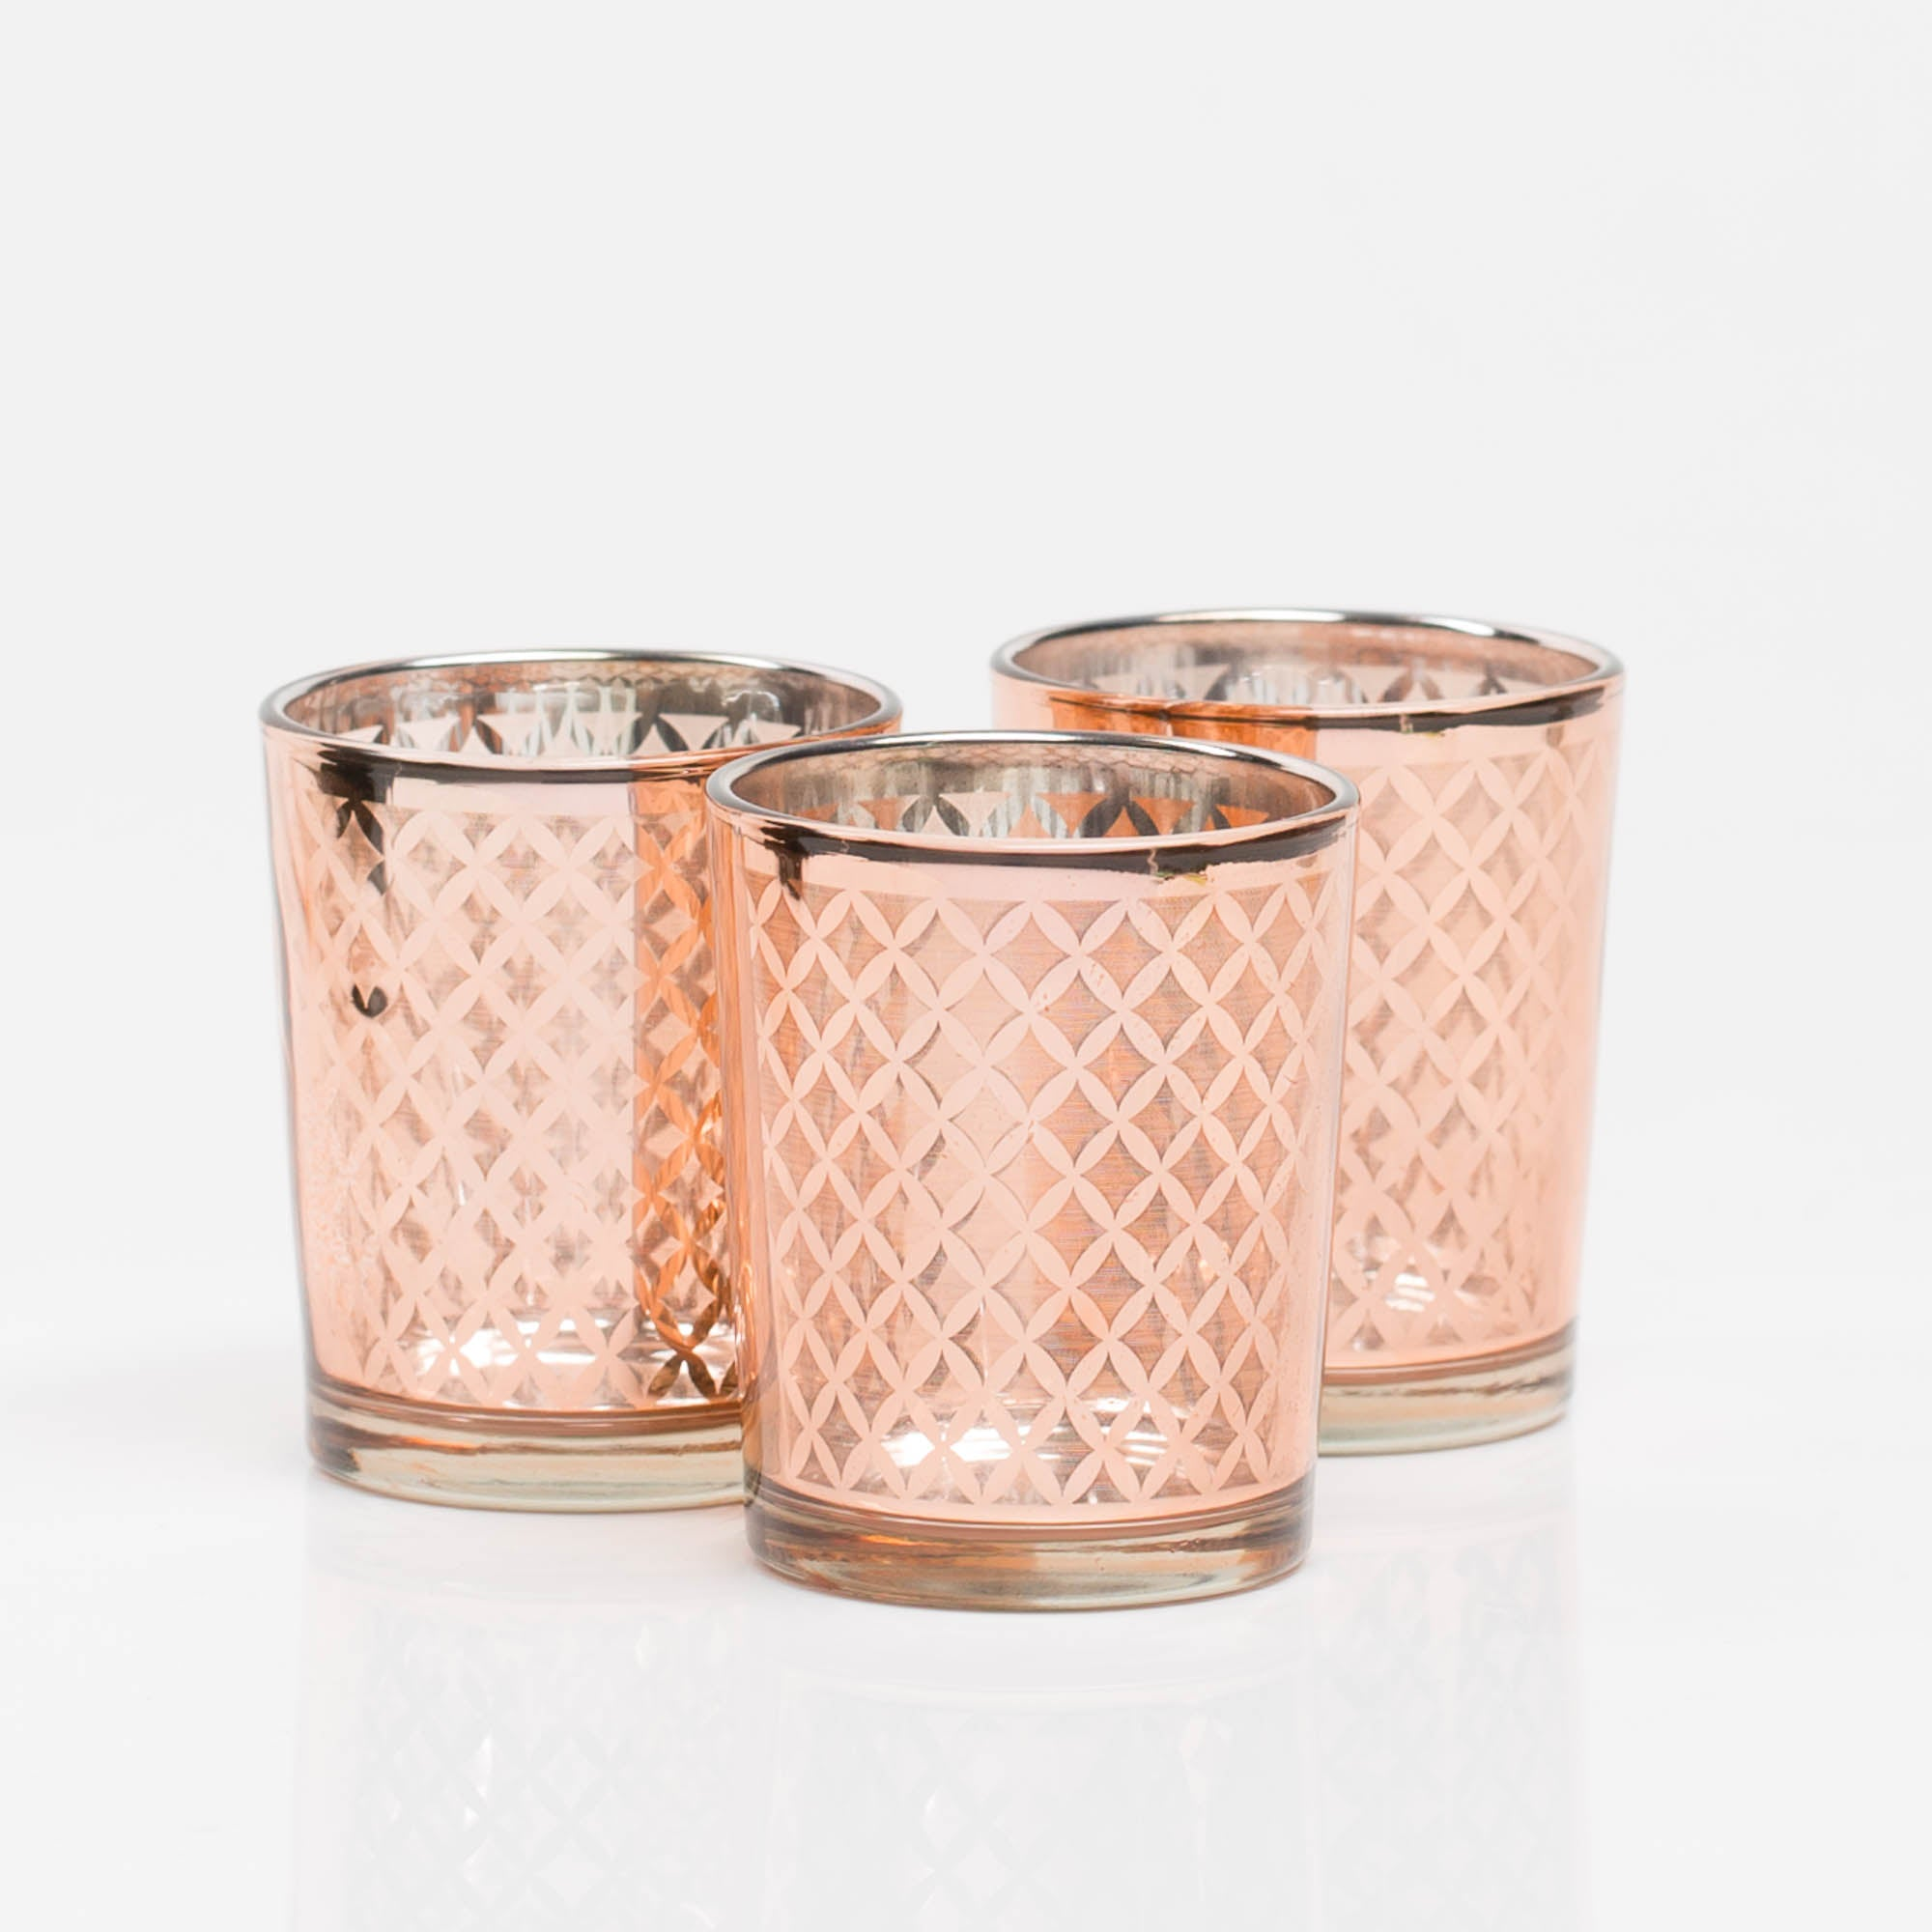 richland rose gold lattice glass holder small set of 12